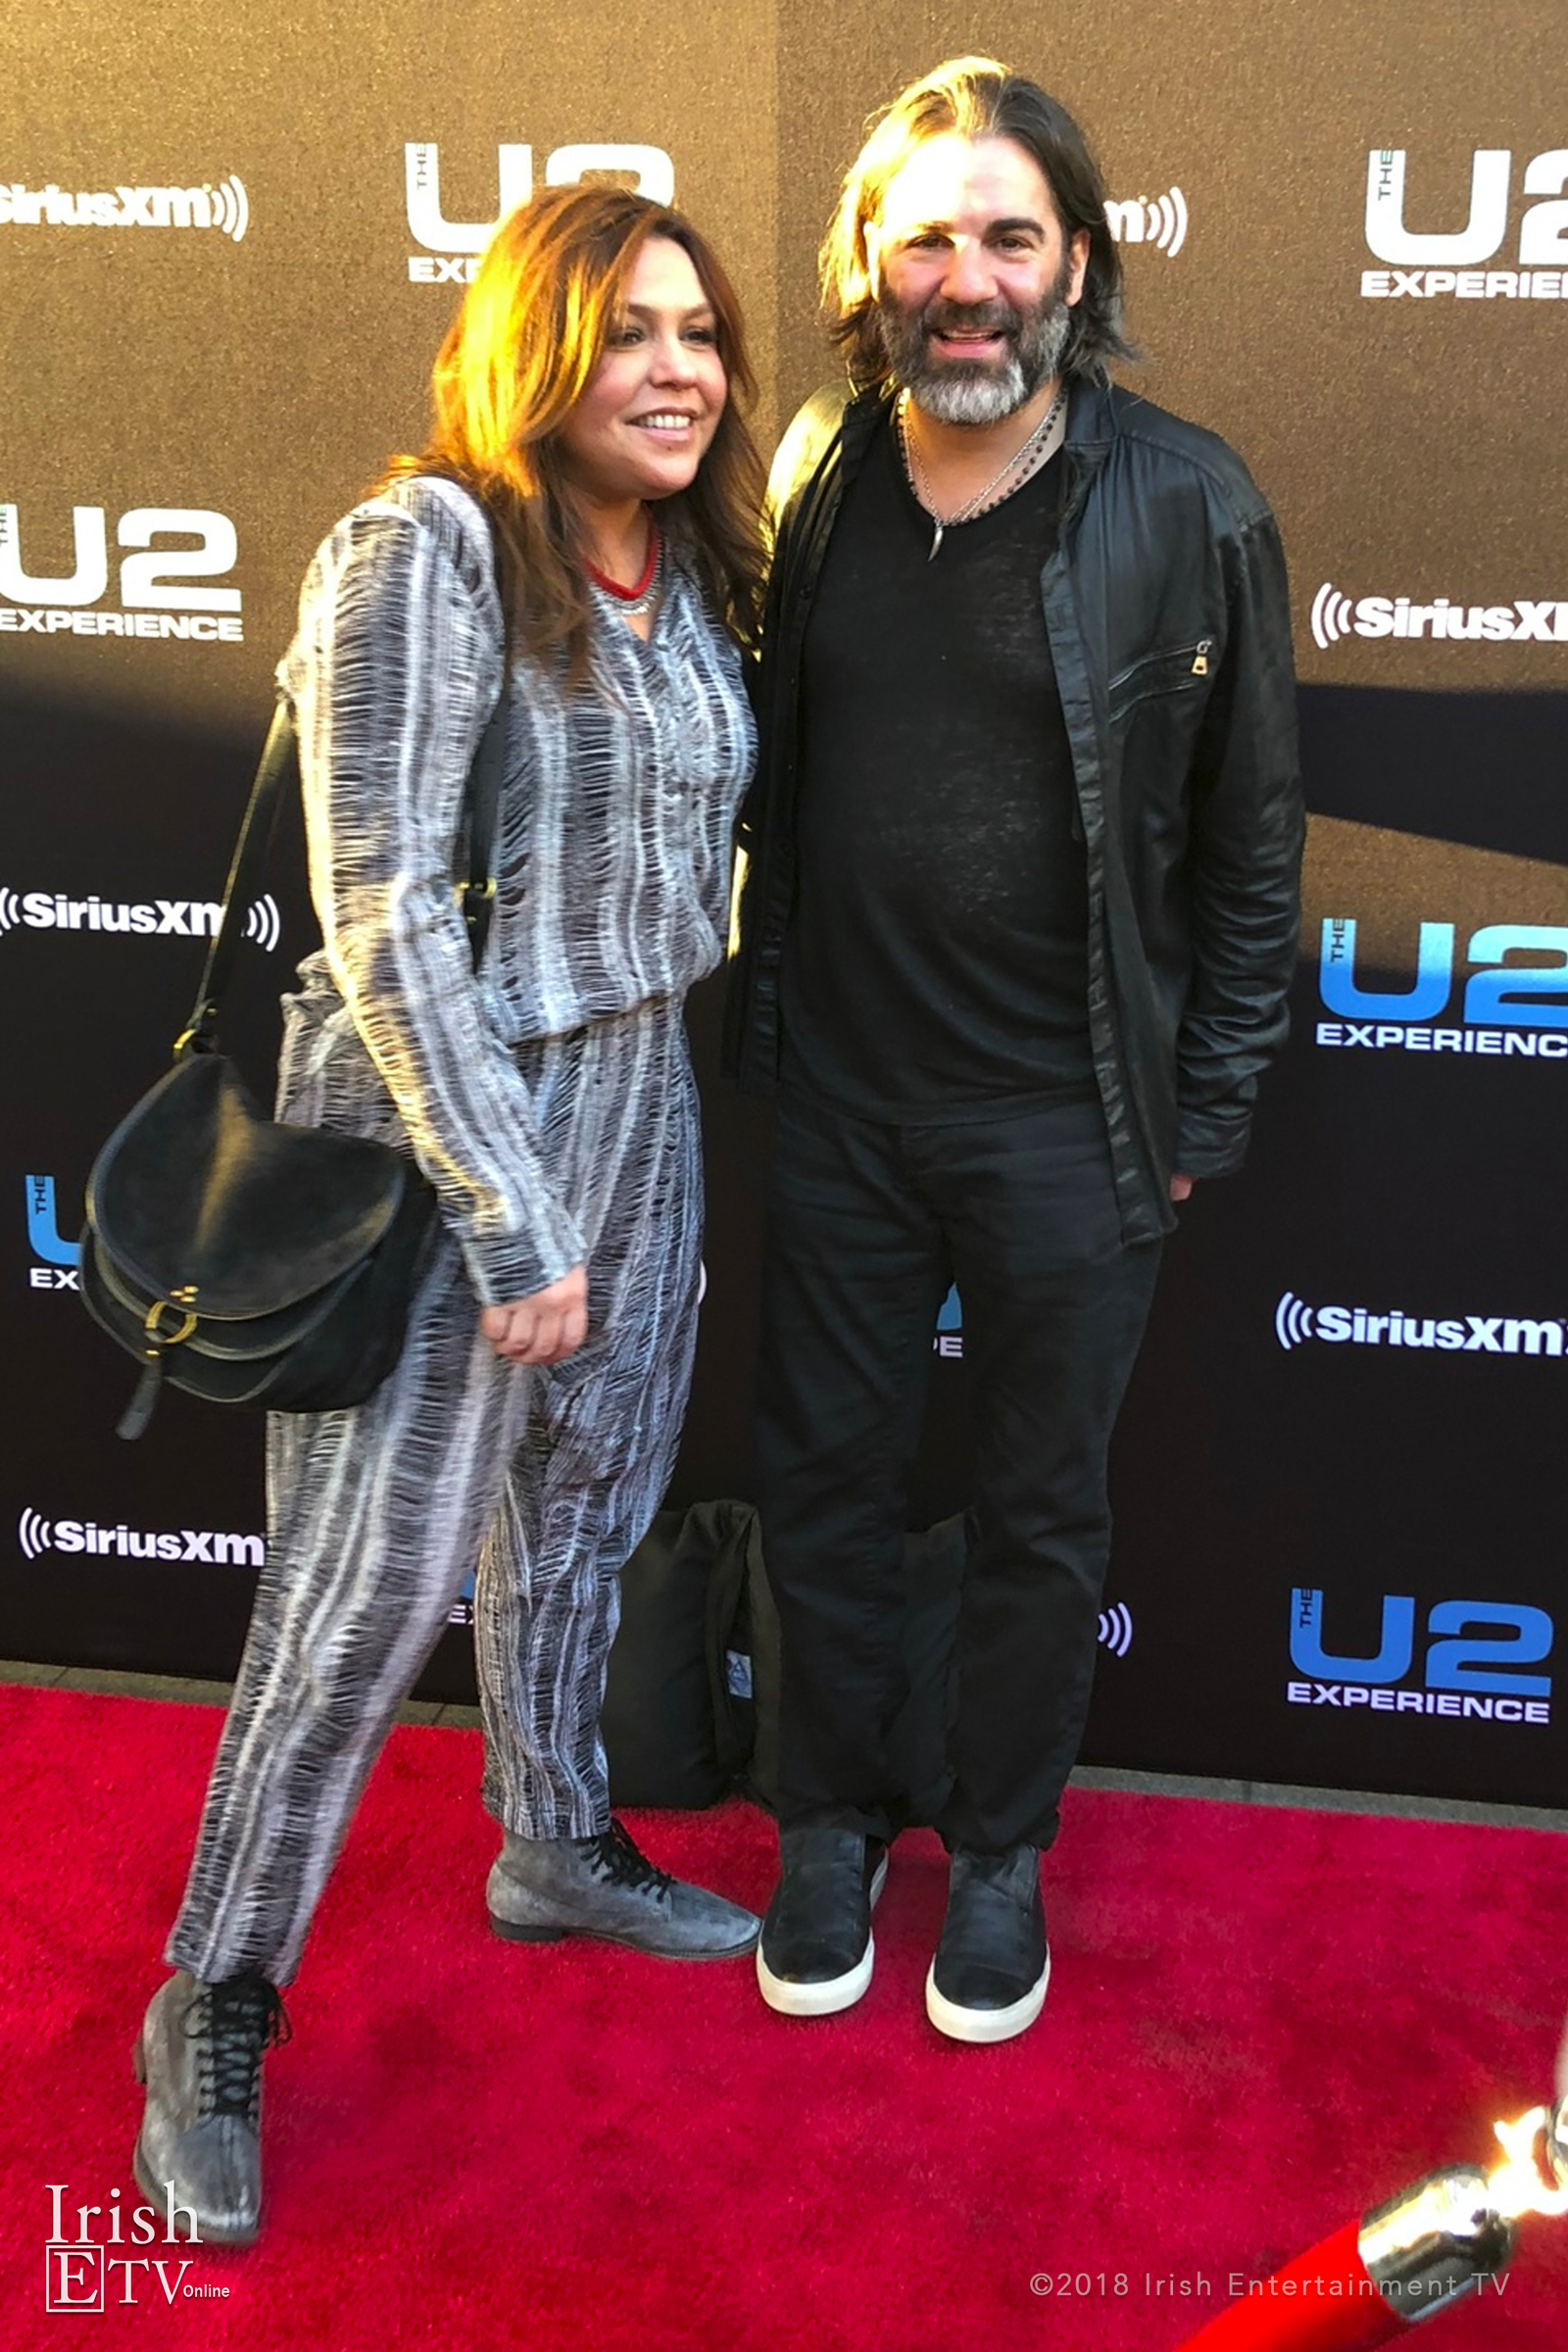 Carpet U2 U2 Experience Tour Red Carpet Pictures And Interviews At The